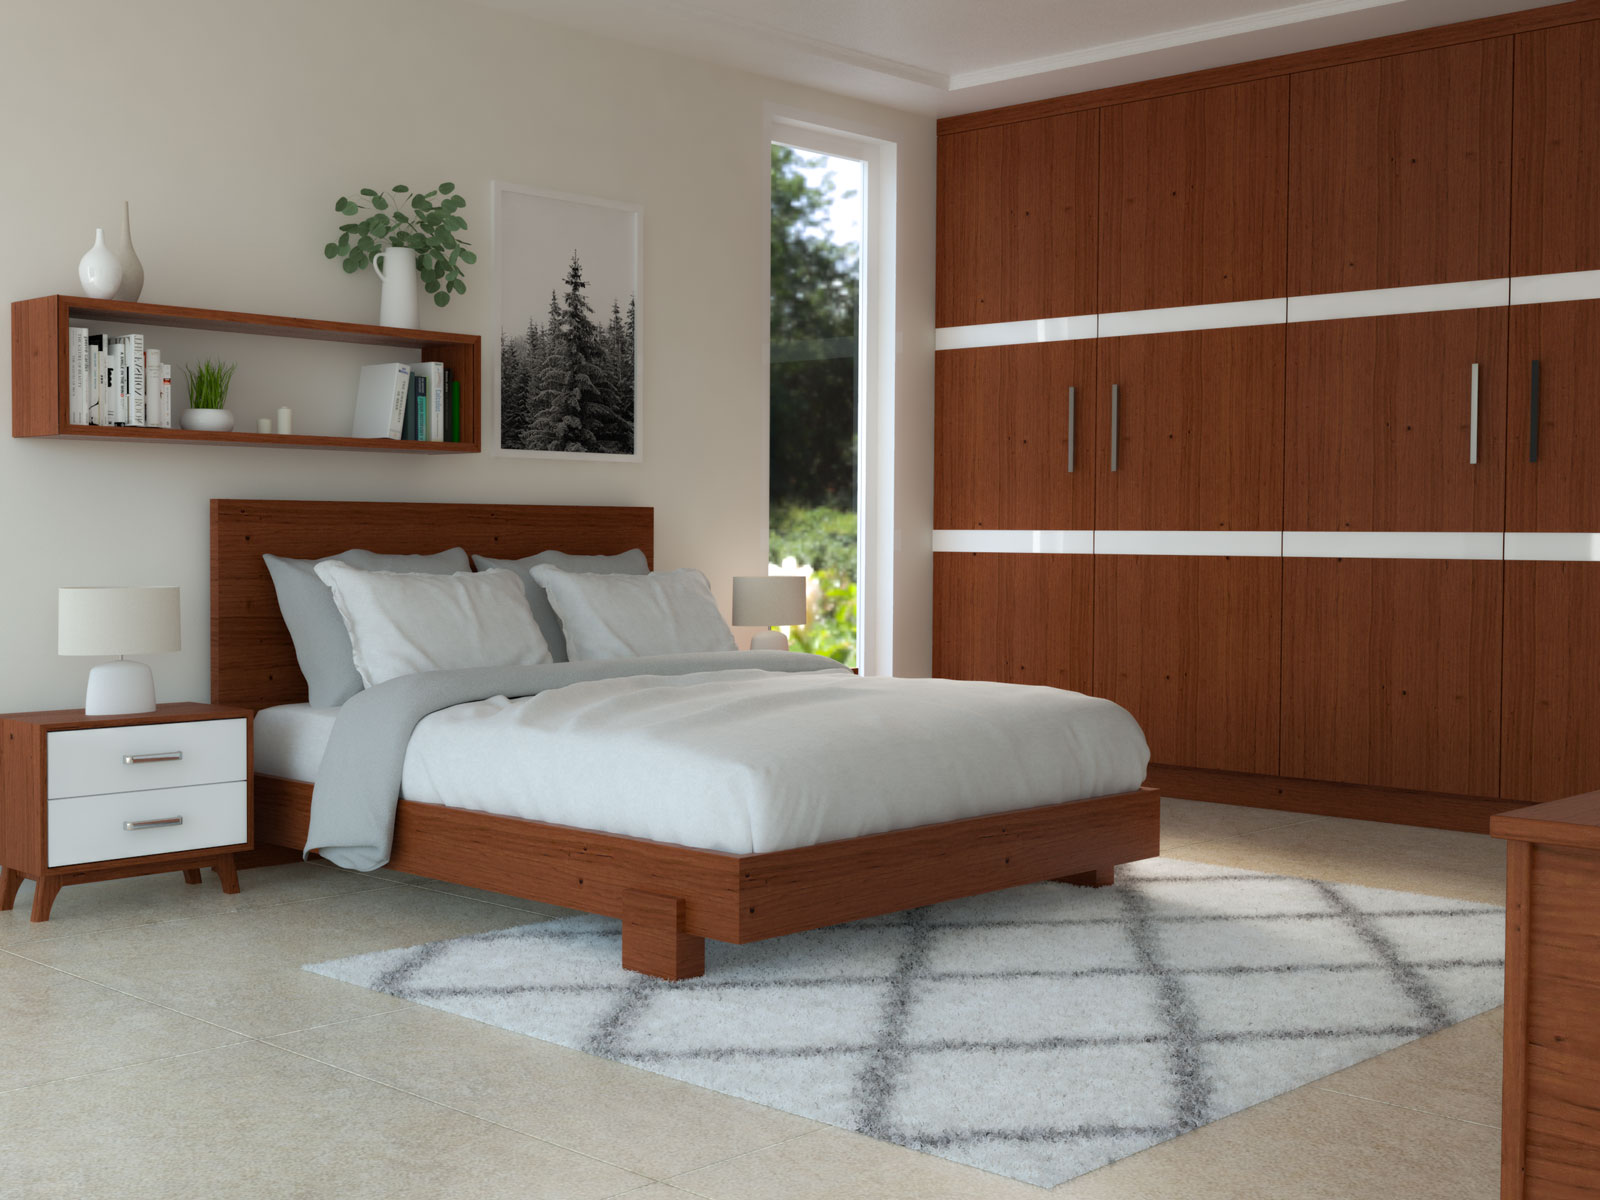 White rug with cherry wood furniture